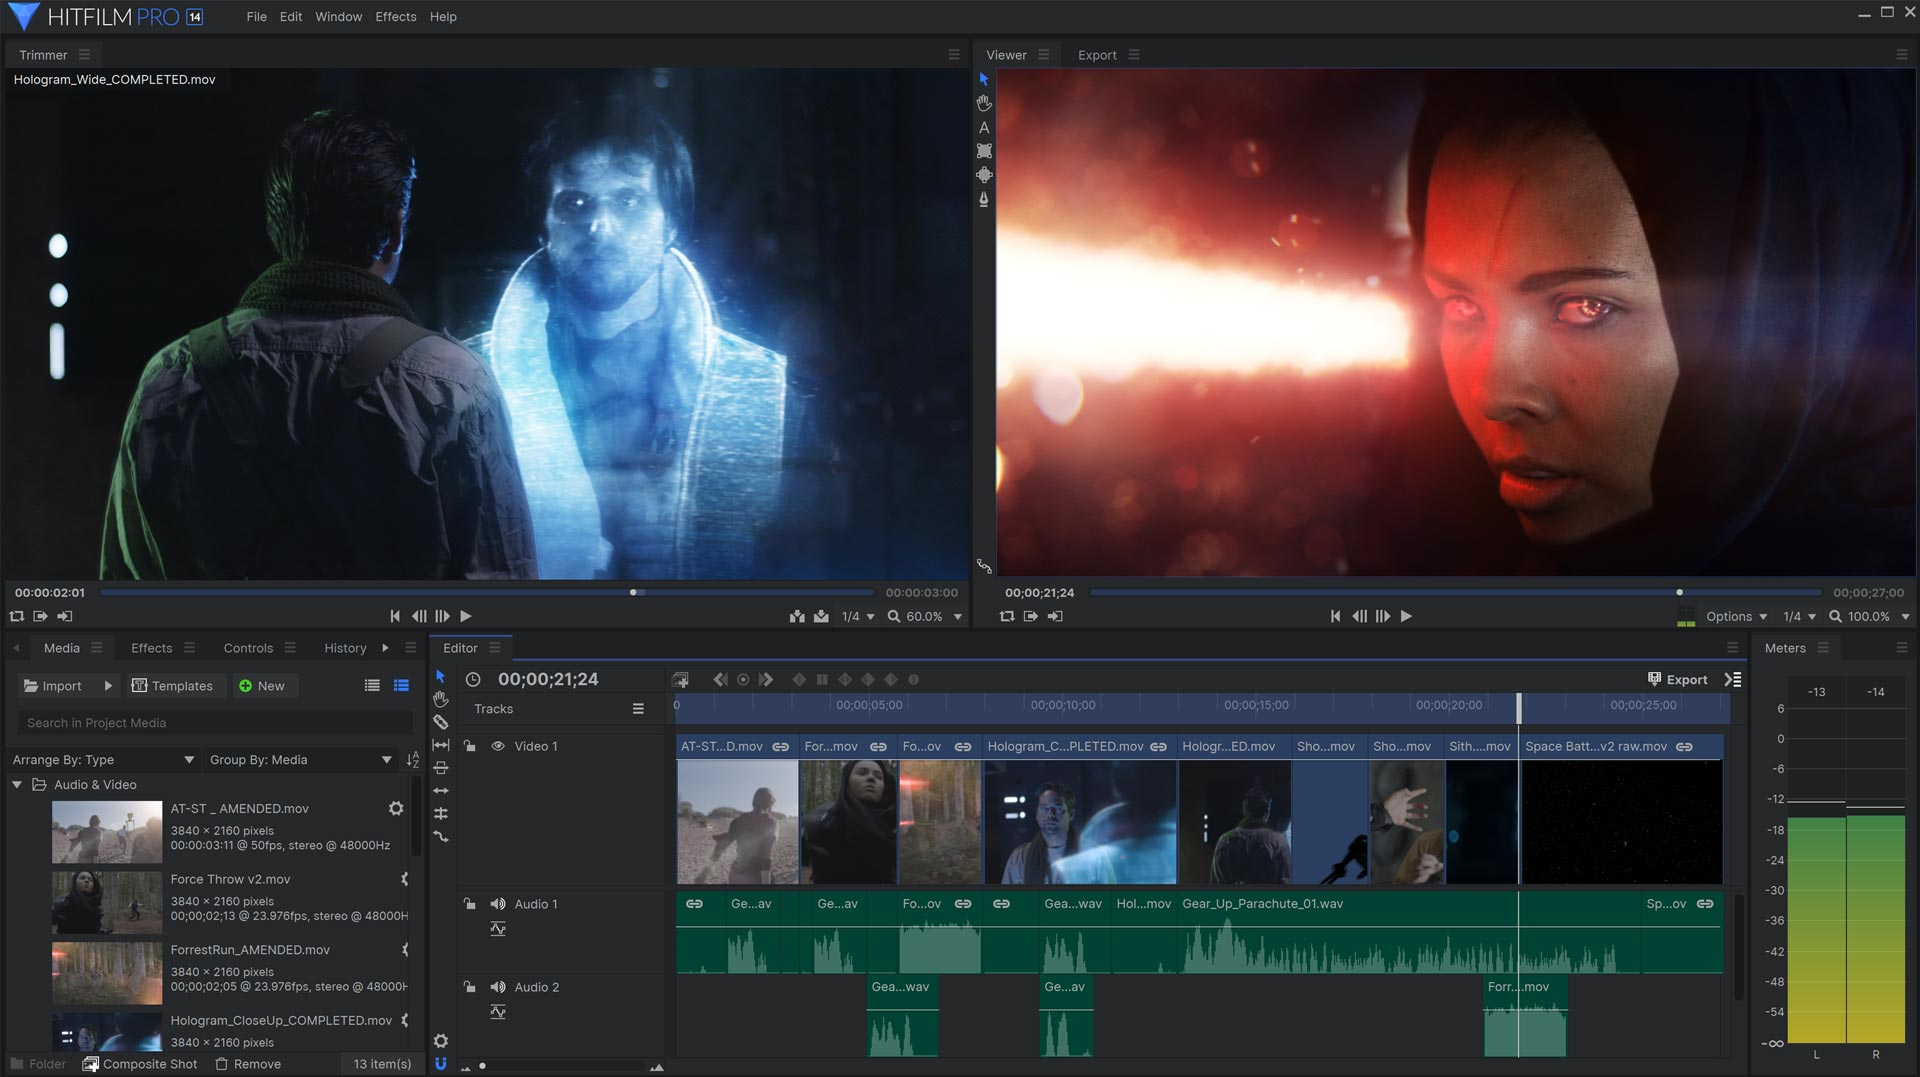 Hitfilm Pro Vfx Video Editing Software For Mac Pc Fxhome